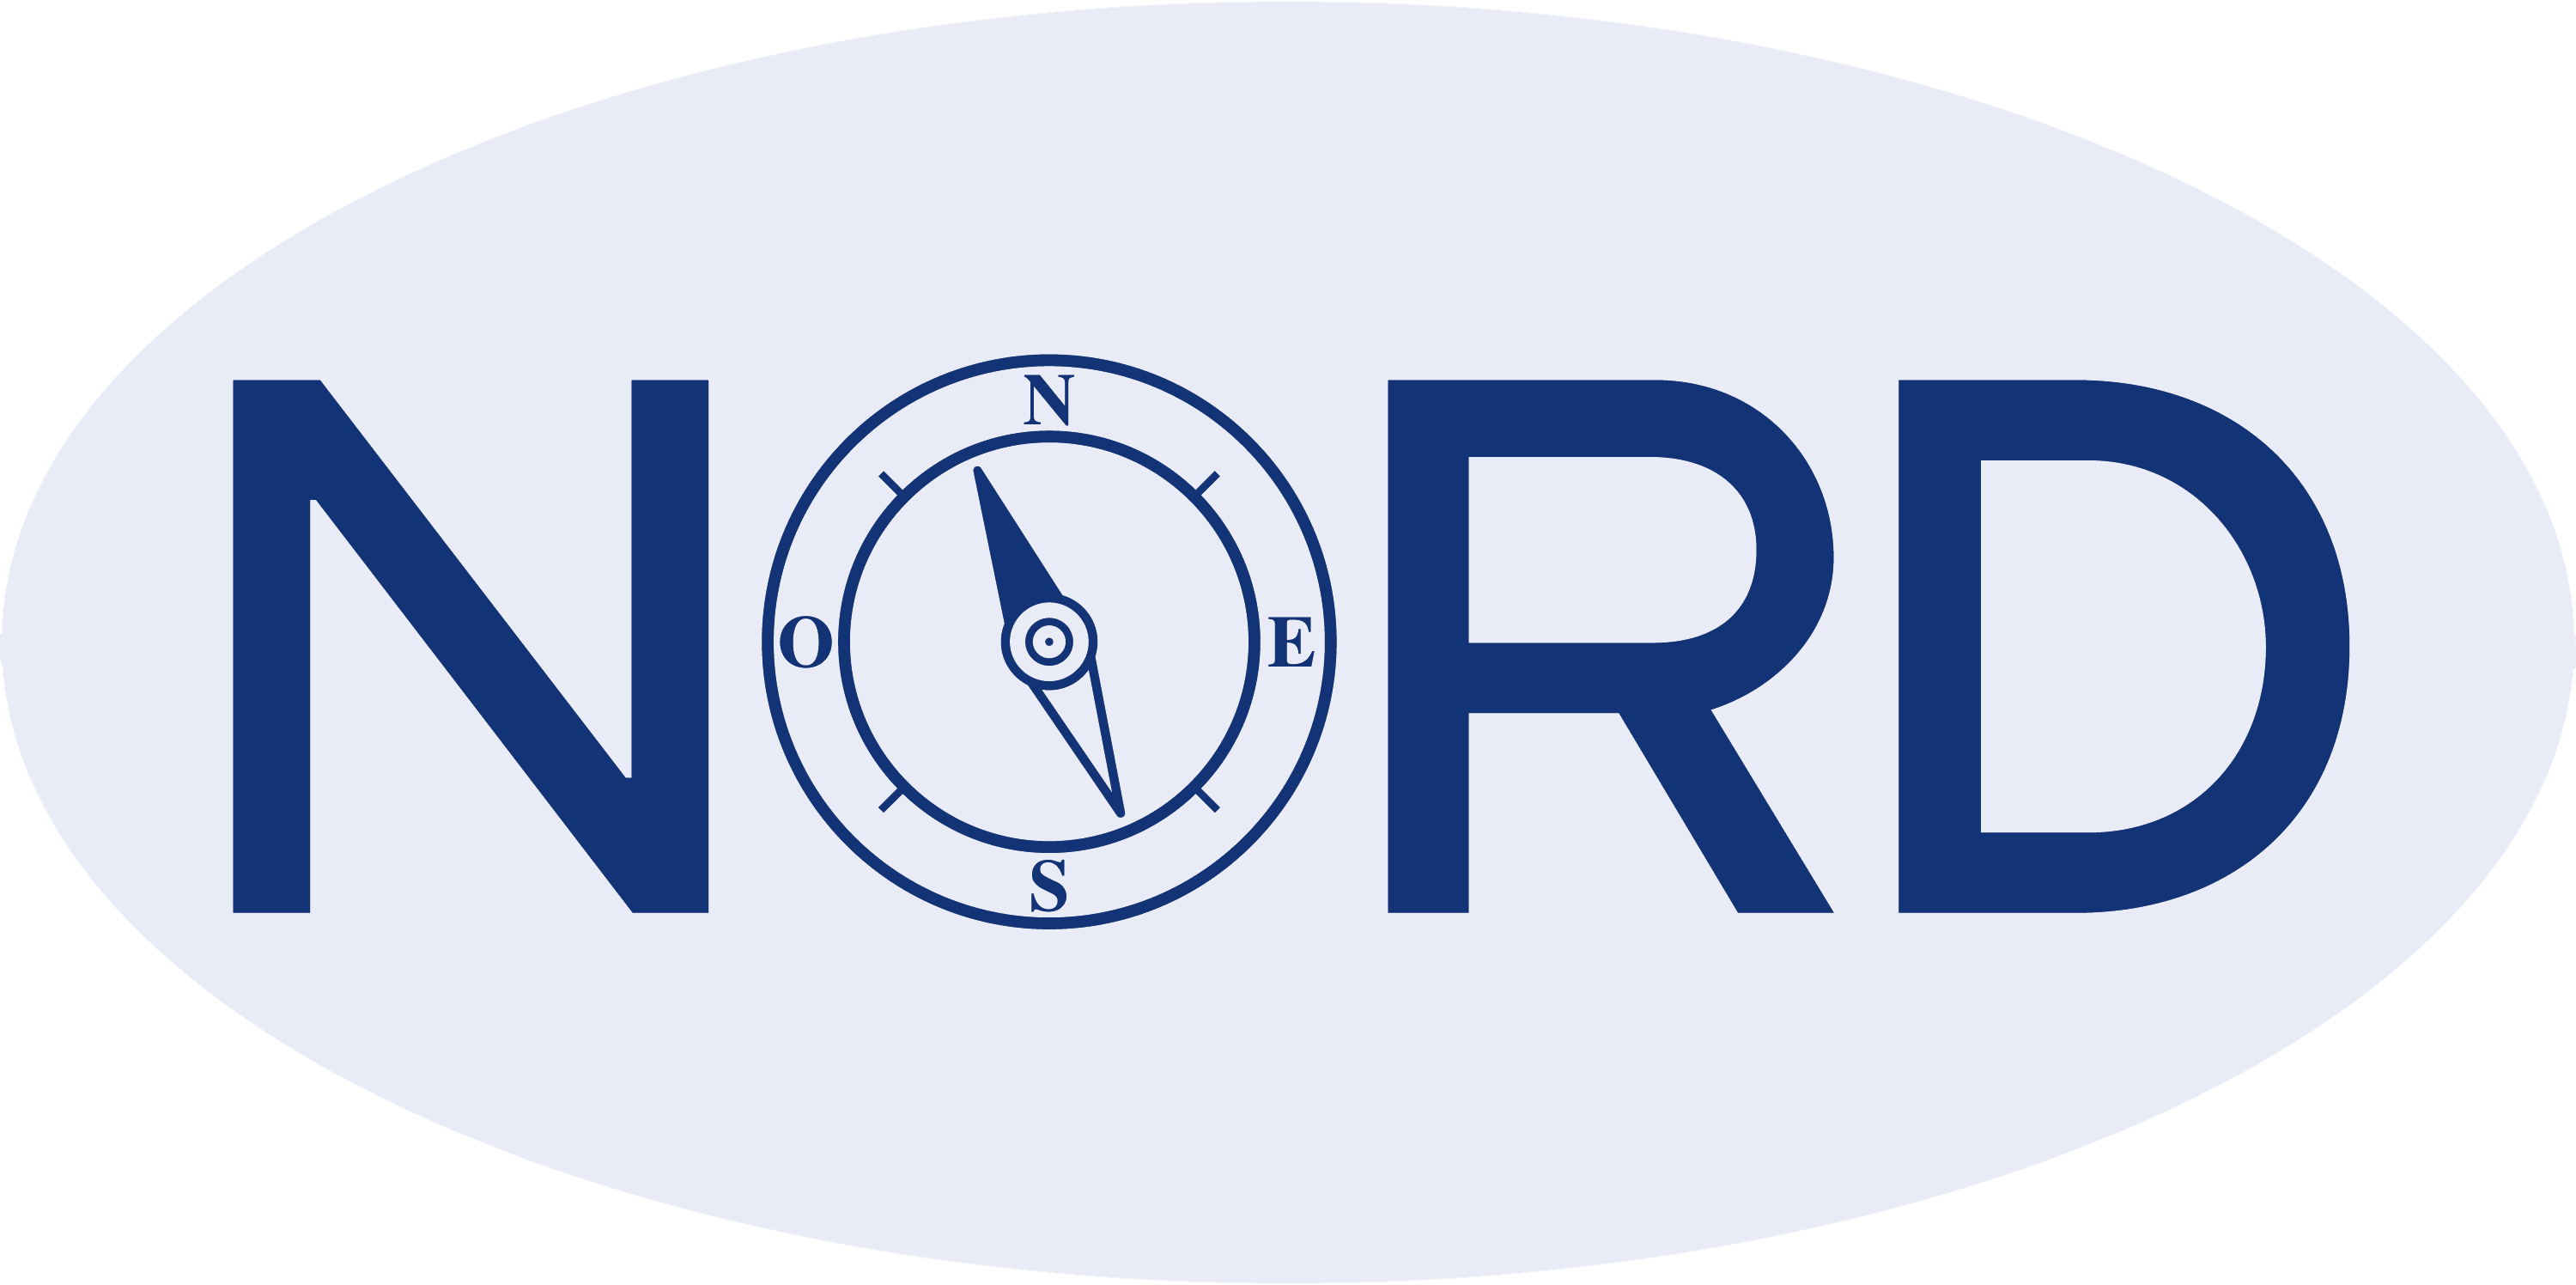 Nord s.r.l